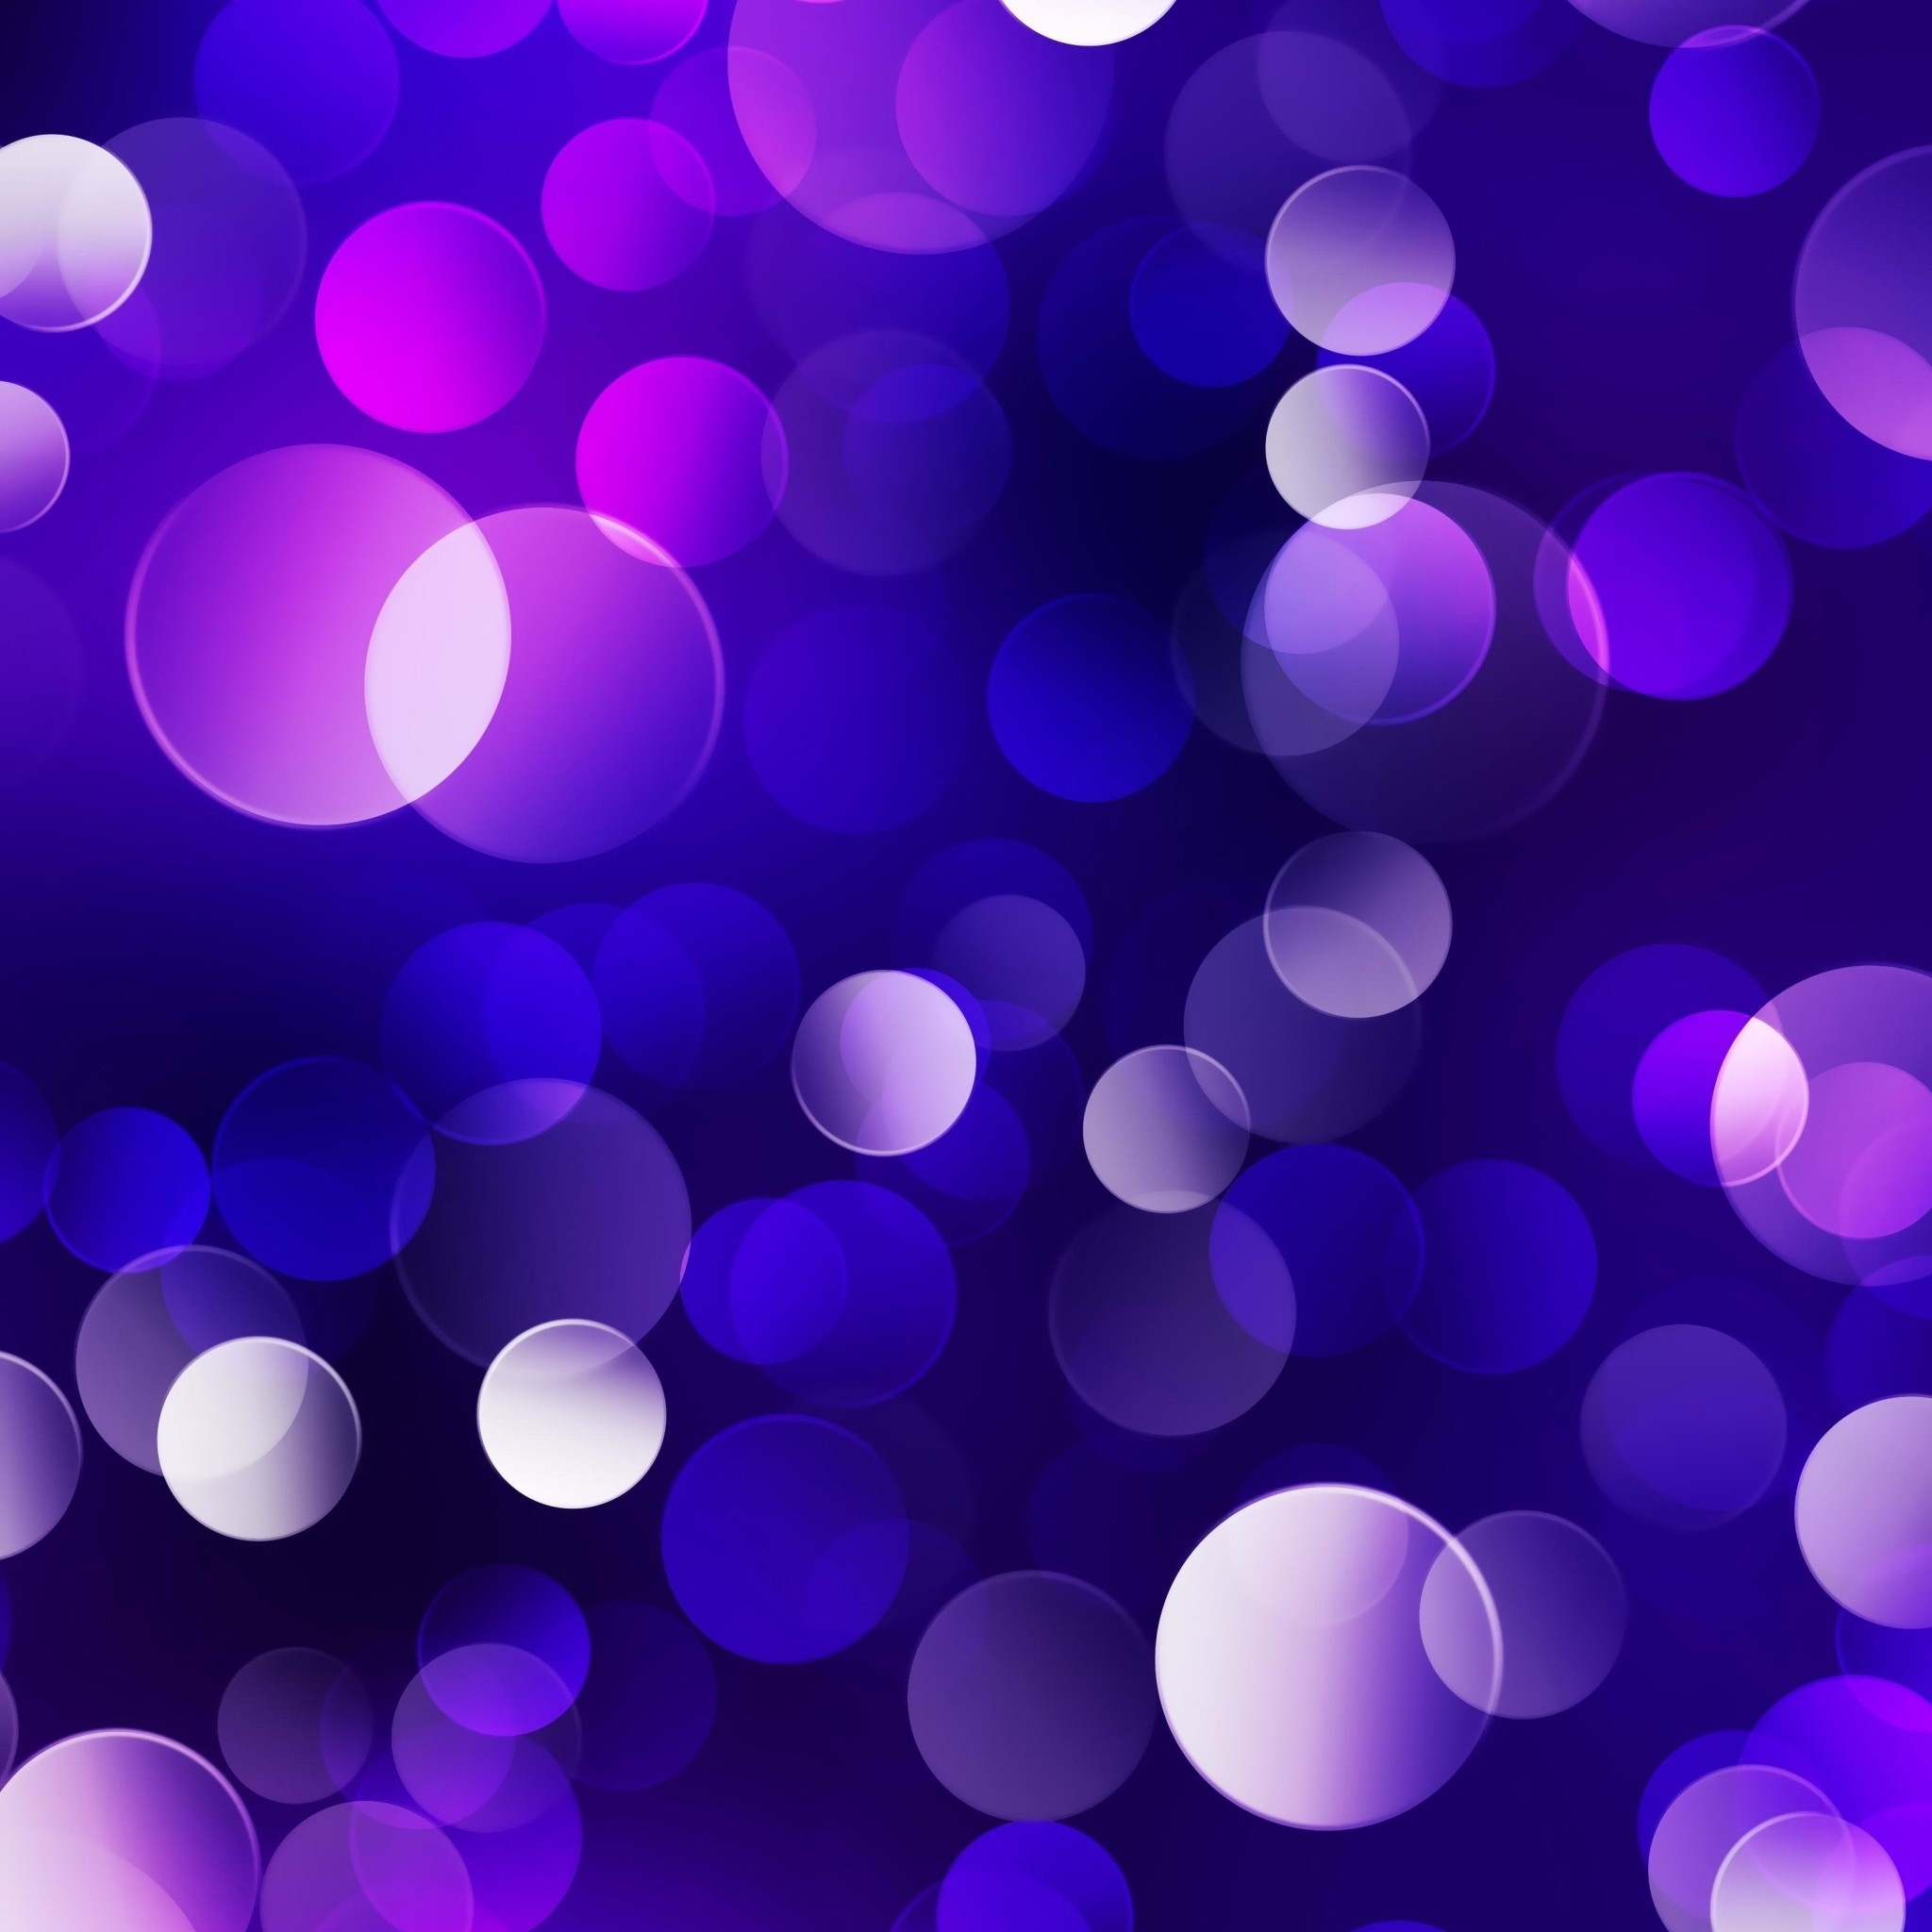 Purple Abstract Background HD wallpaper download in 2048×2048, 1024×1024  resolutions. Find similar and same